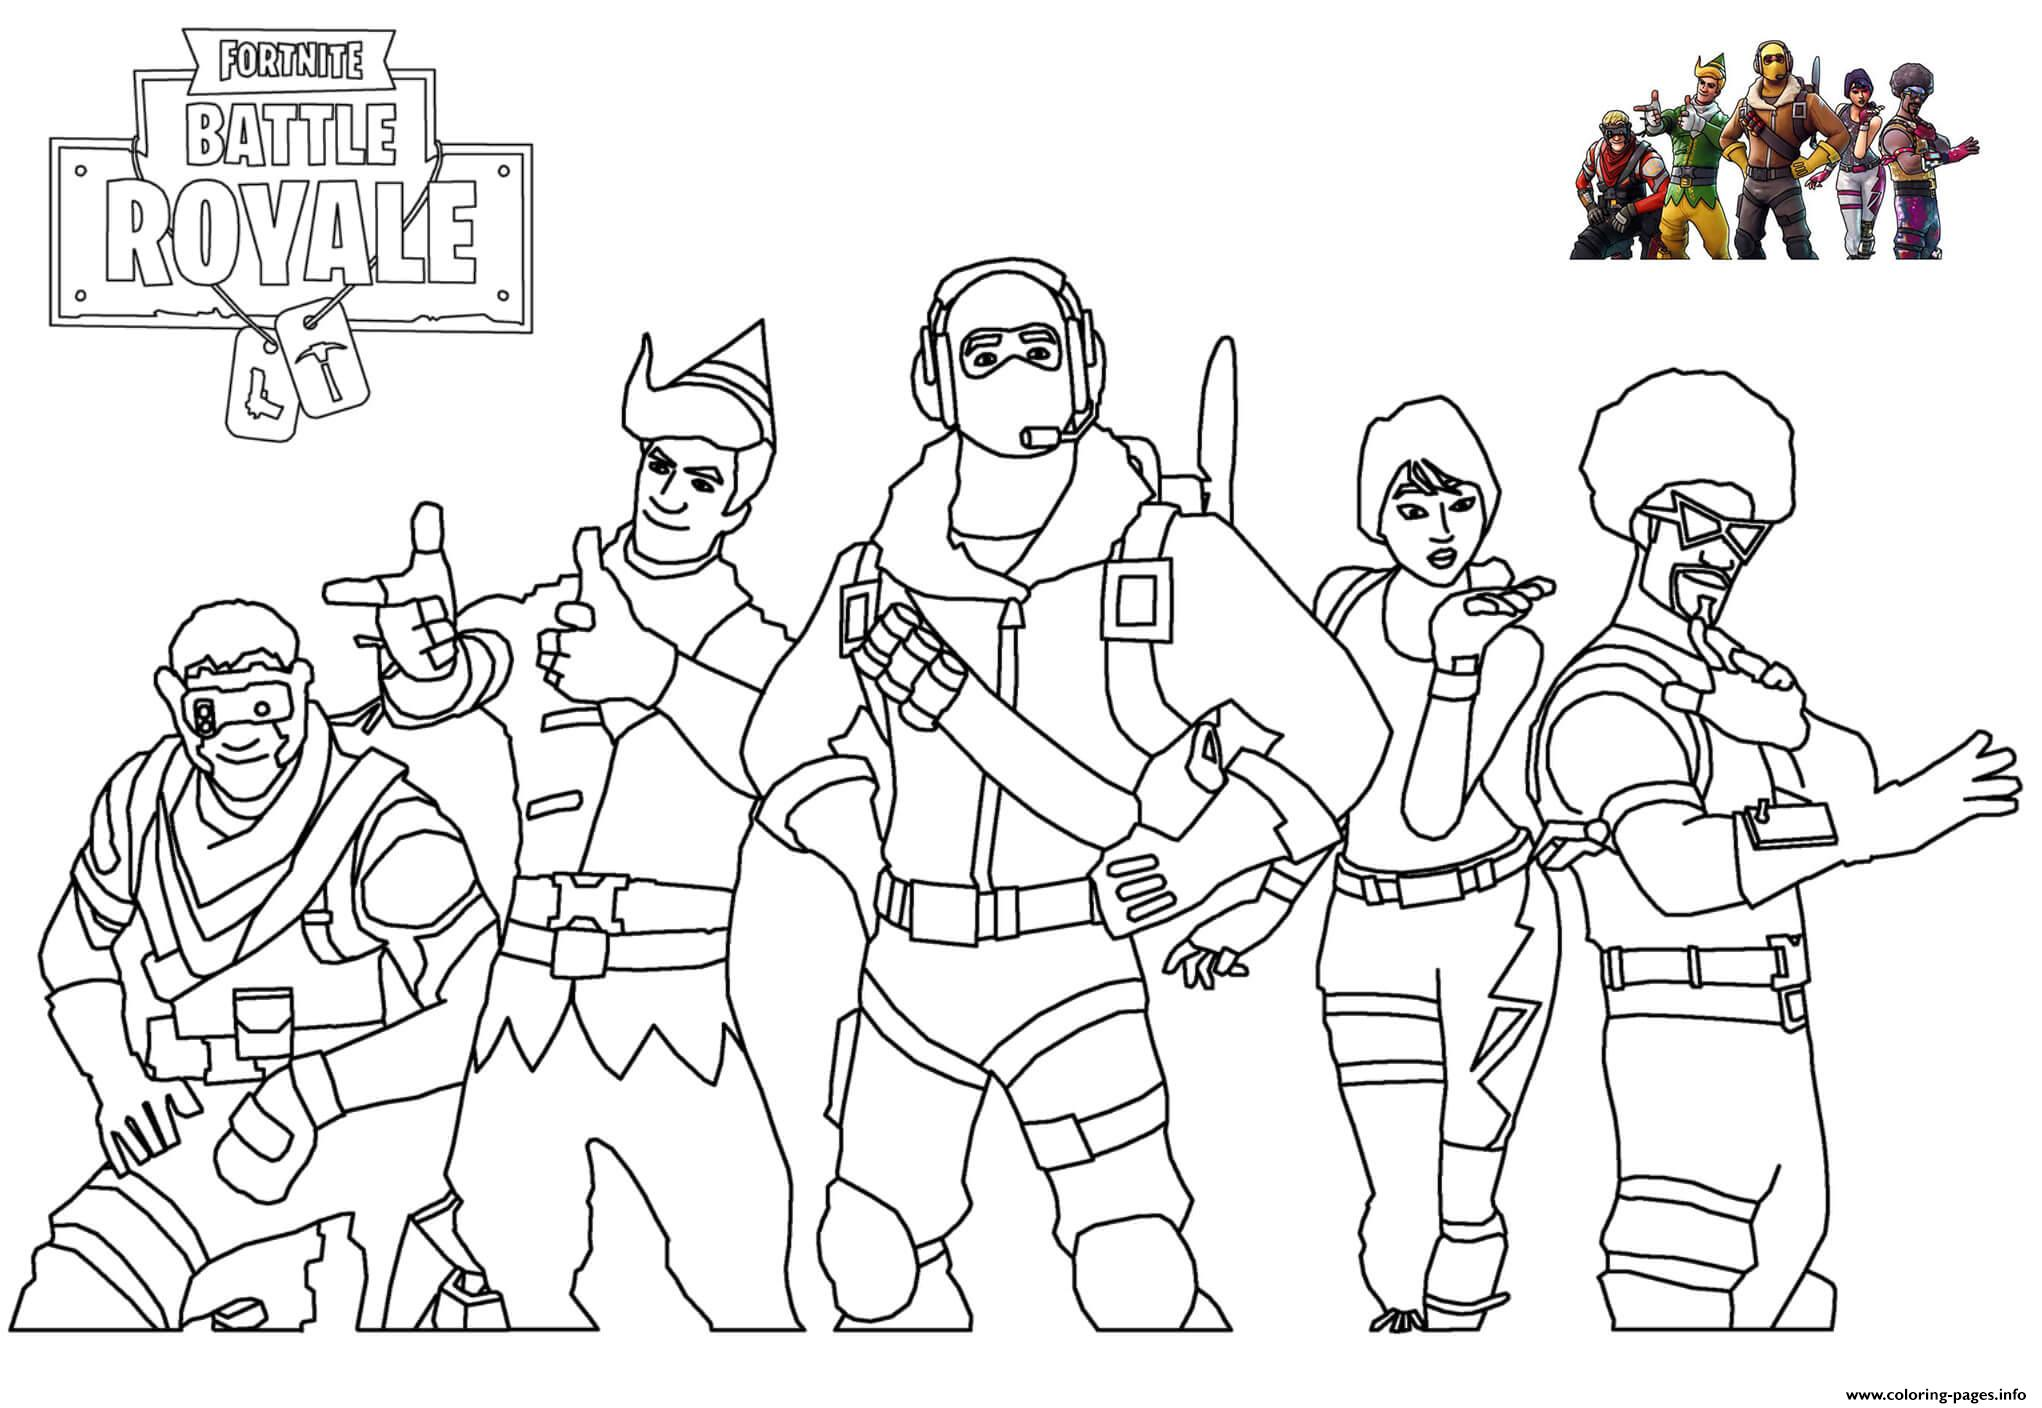 Skins Picture Fortnite Coloring Pages Printable